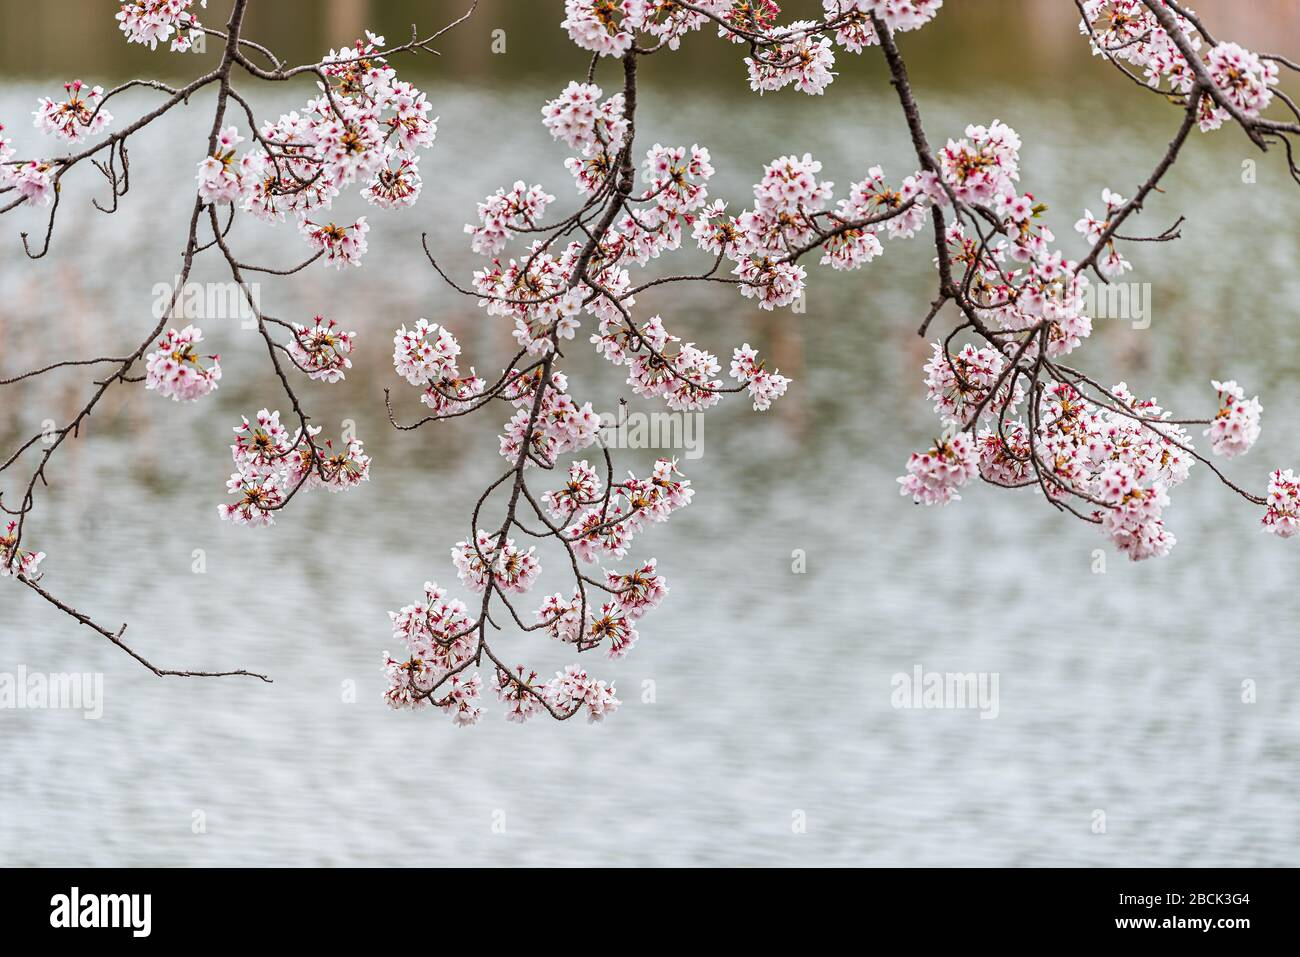 Japanese cherry blossom on sakura tree branches by Osawa-no-Ike Pond lake in spring in Arashiyama area by Daikakuji Temple with water ripples in blurr Stock Photo